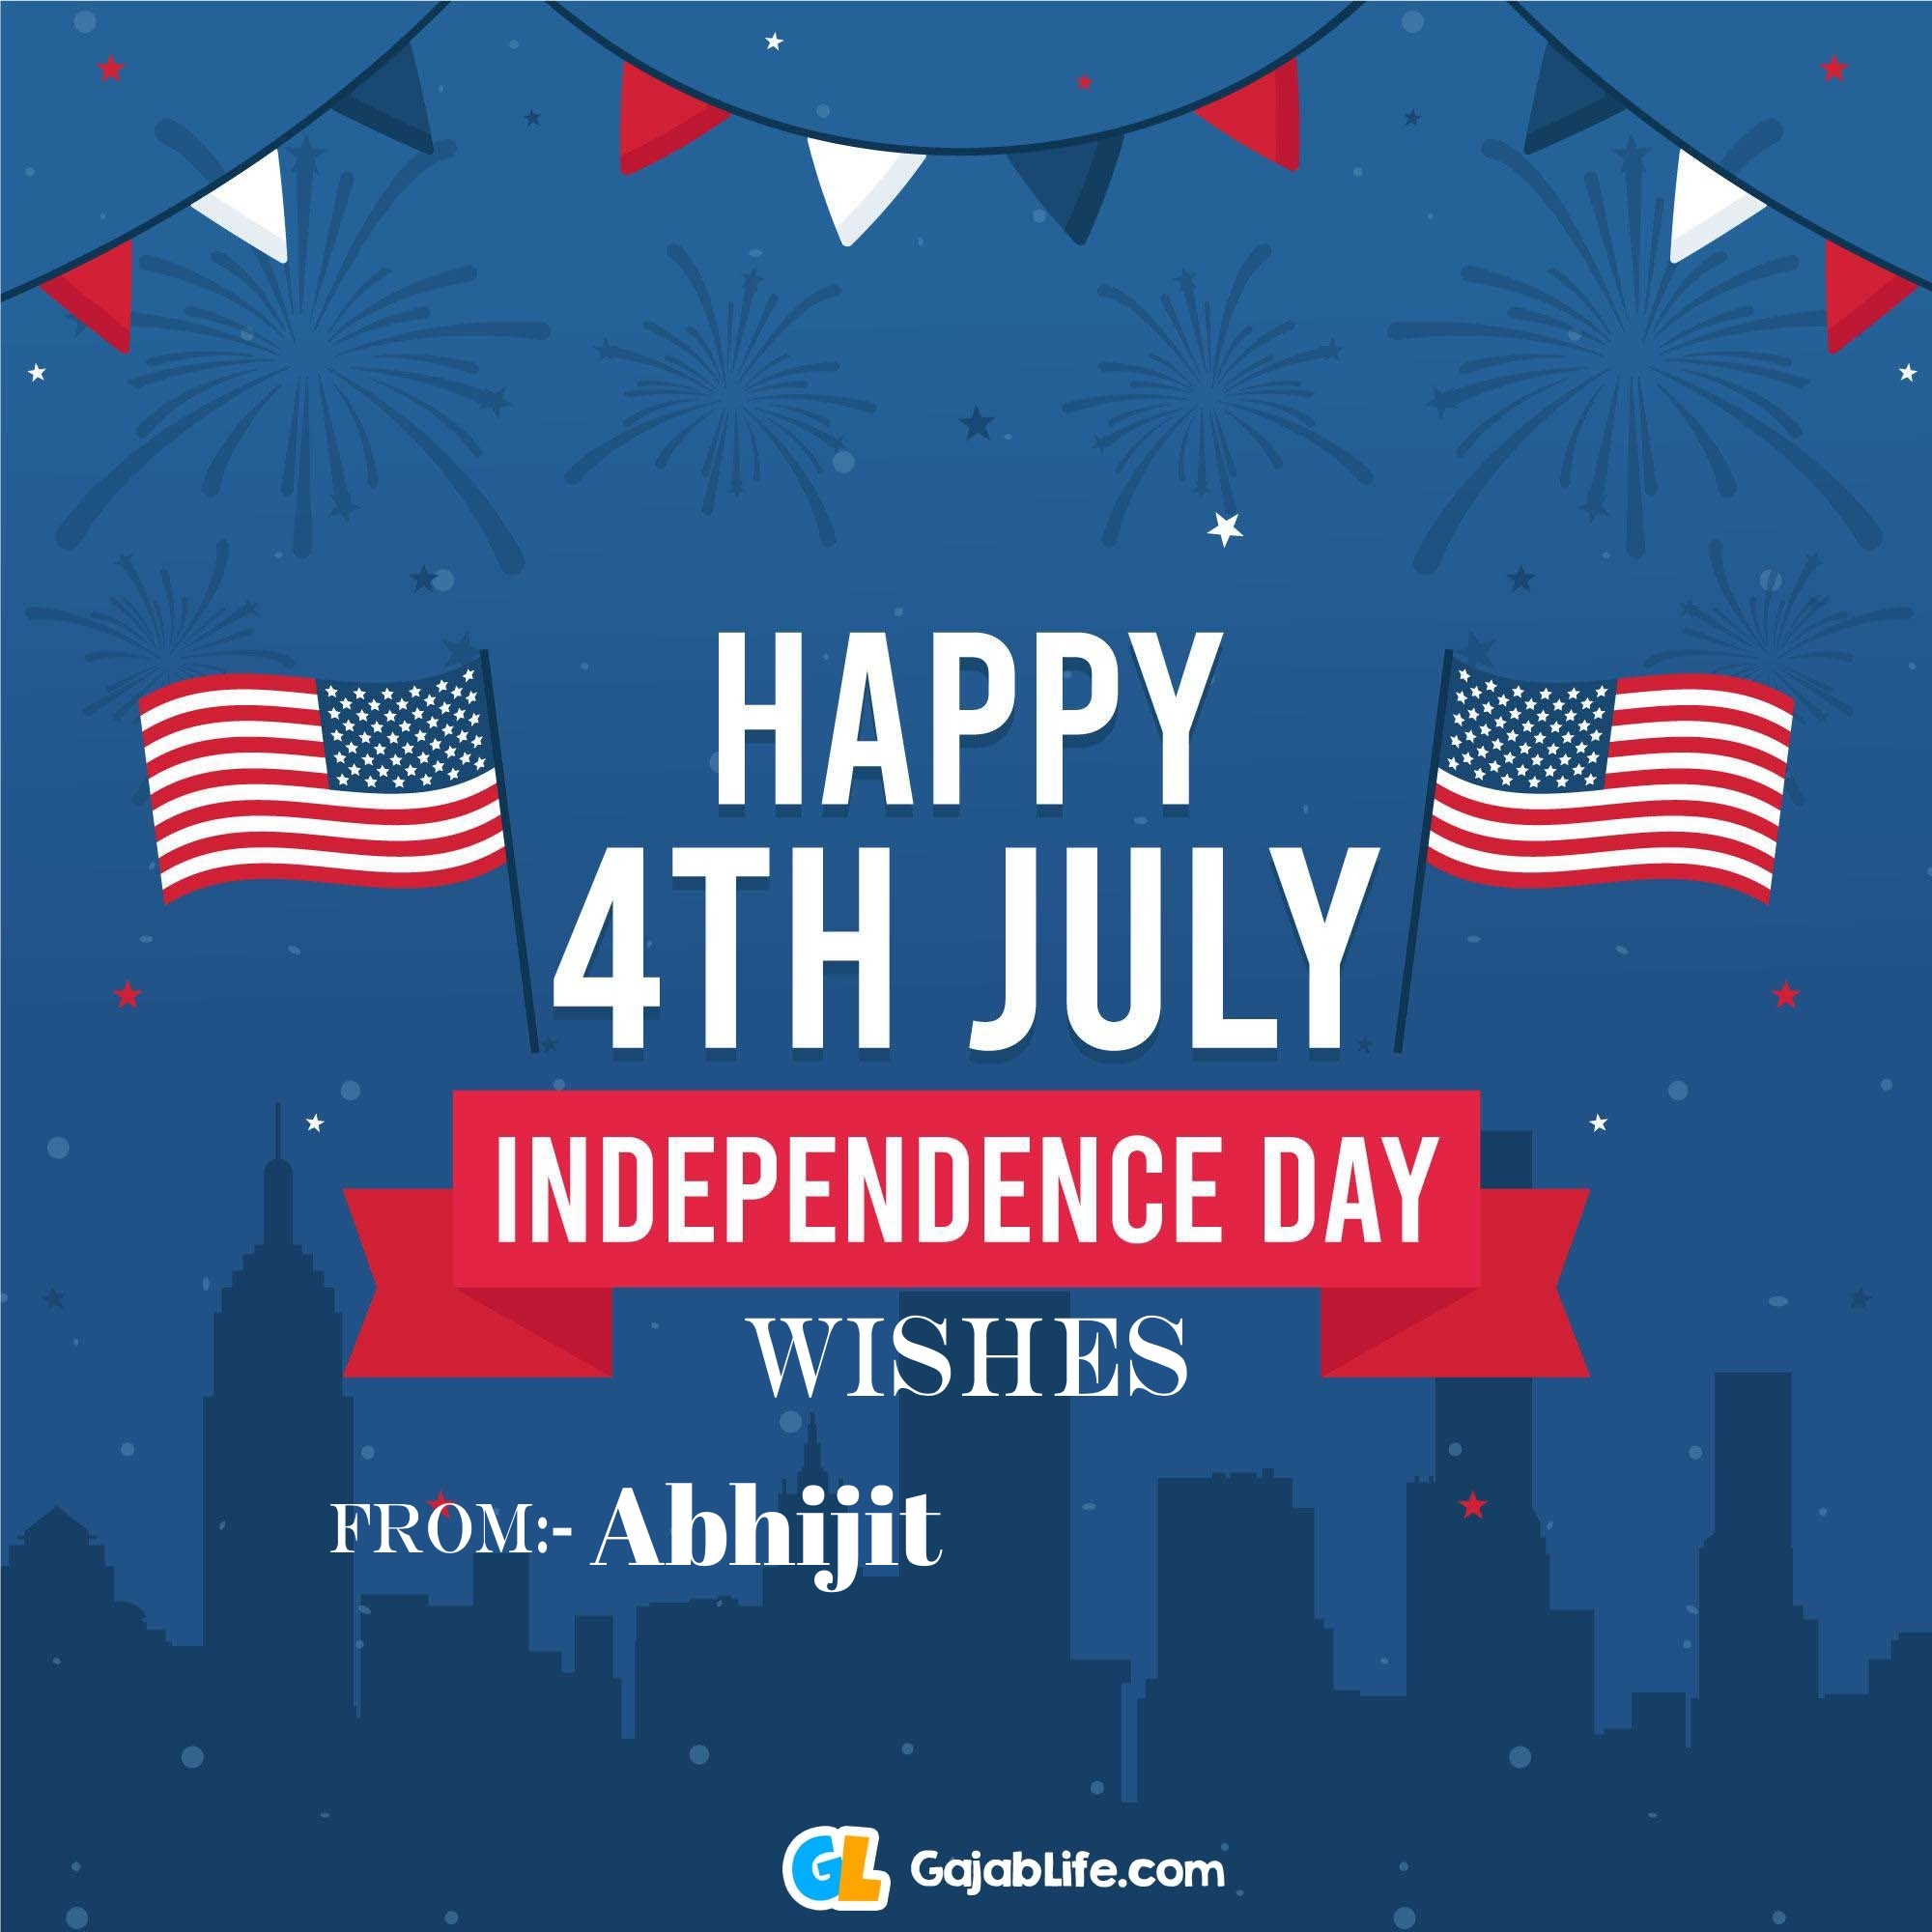 Abhijit happy independence day united states of america images